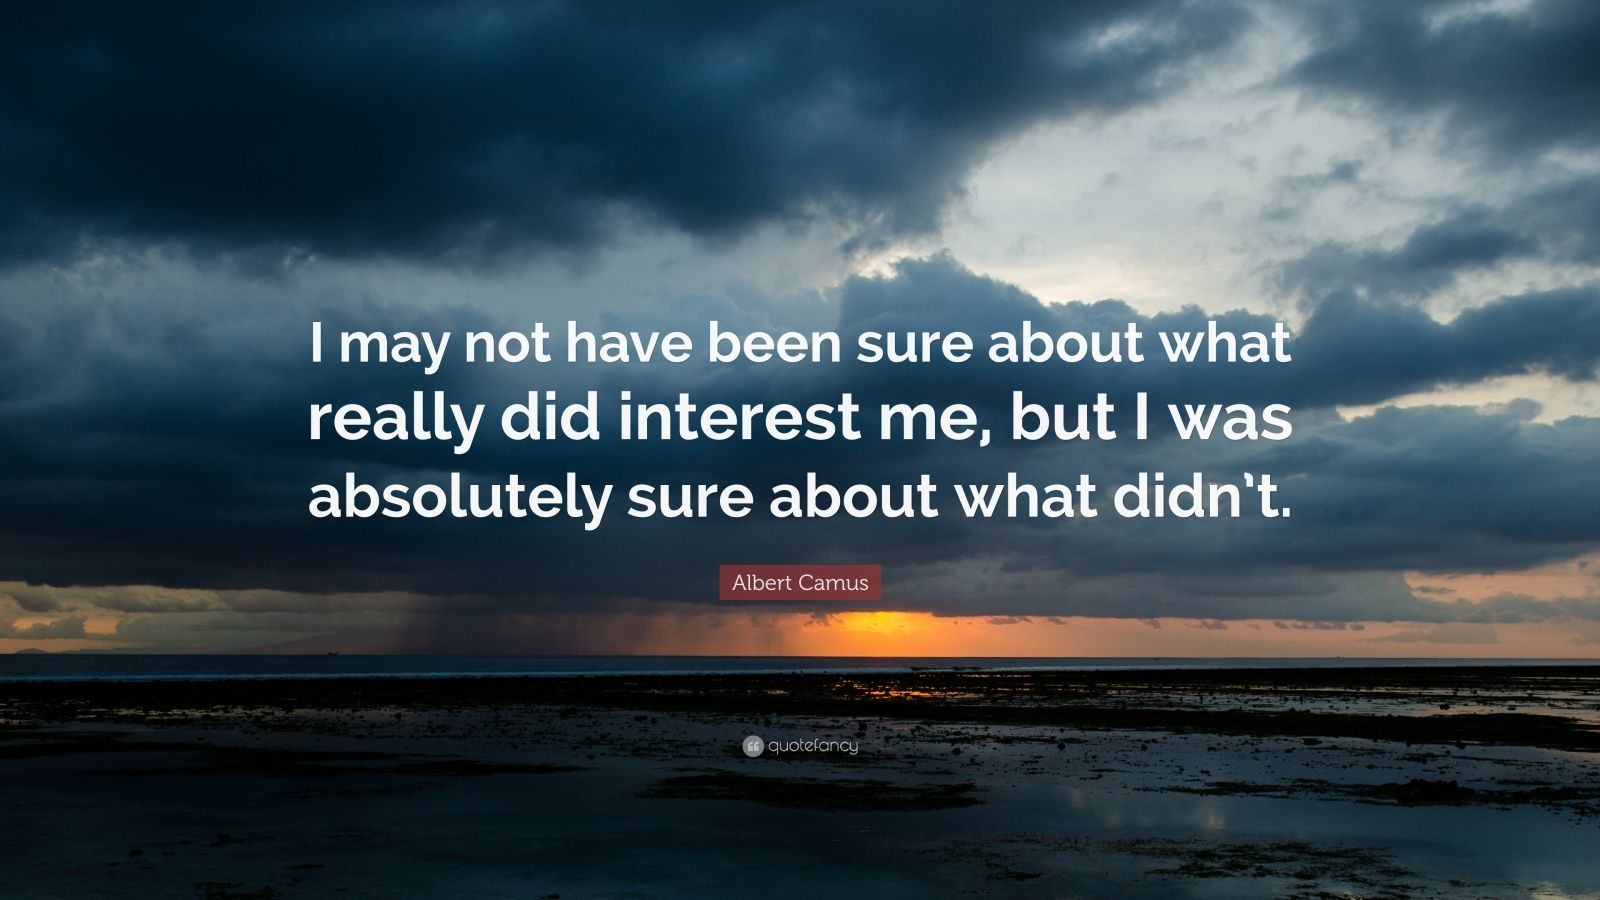 """Albert Camus Quote: """"I may not have been sure about what really did interest me, but I was absolutely sure about what didn't."""""""